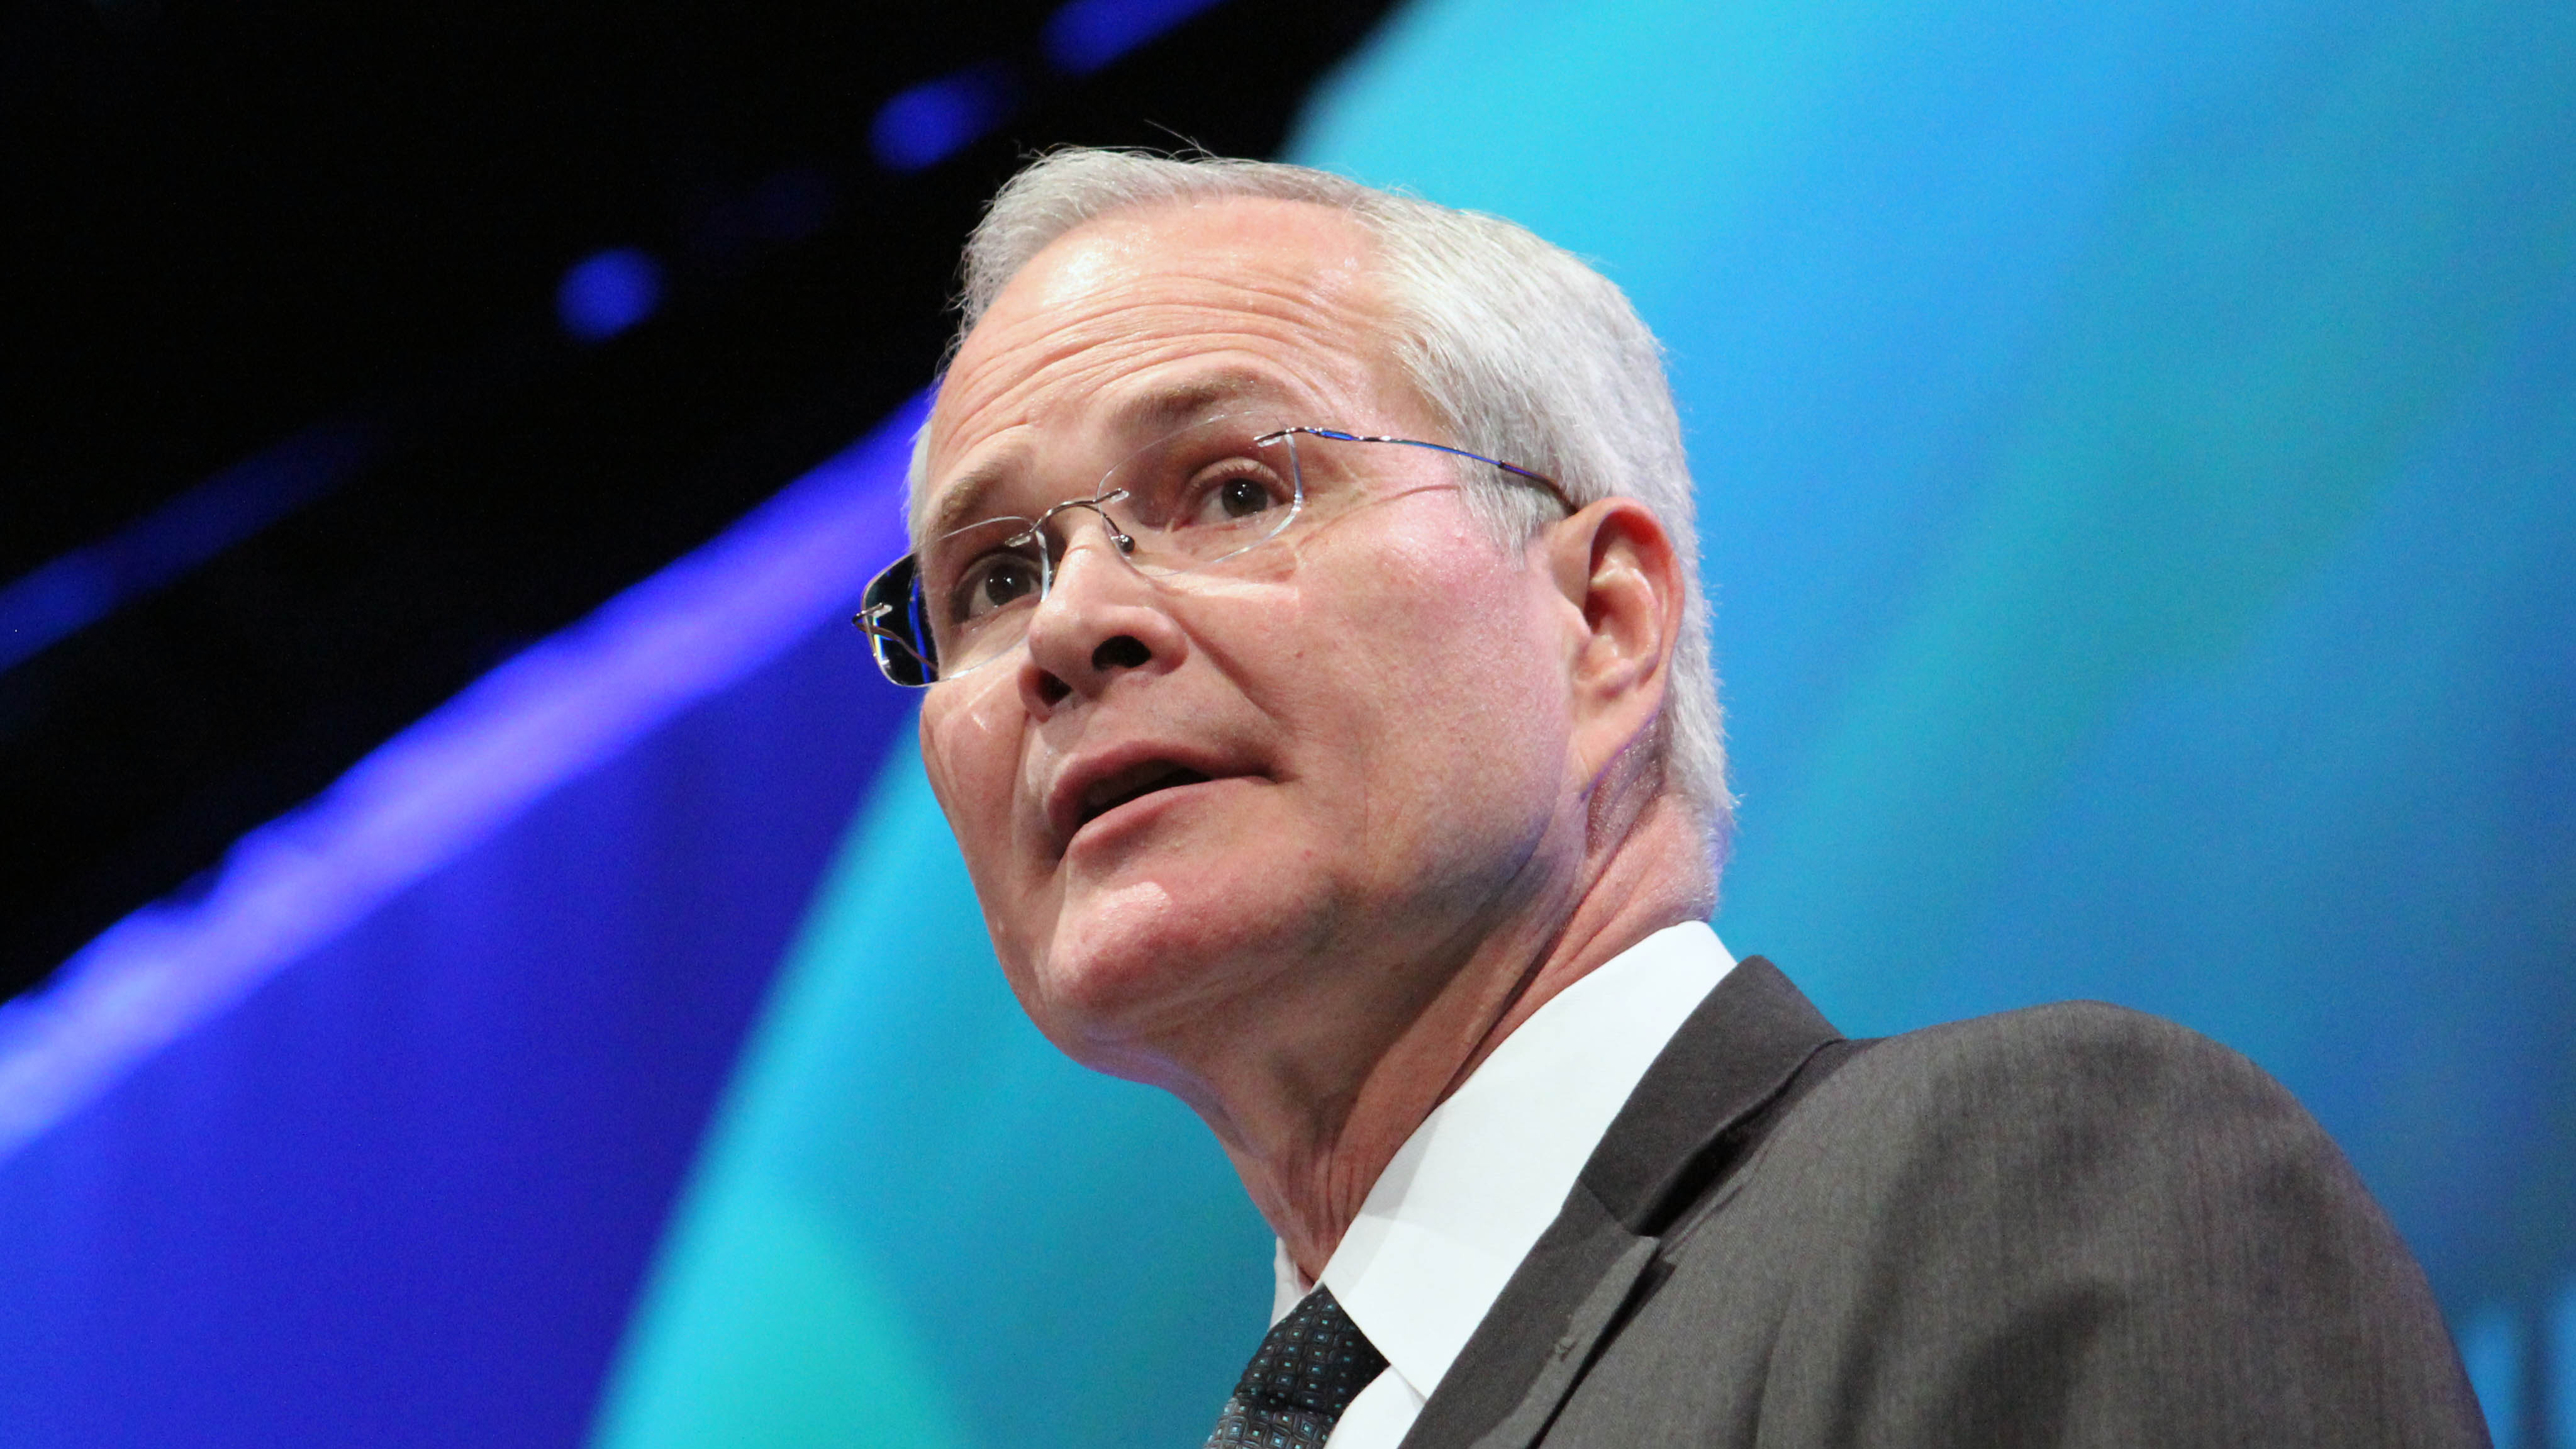 Exxon Mobil's Darren Woods Vows Engagement And Openness